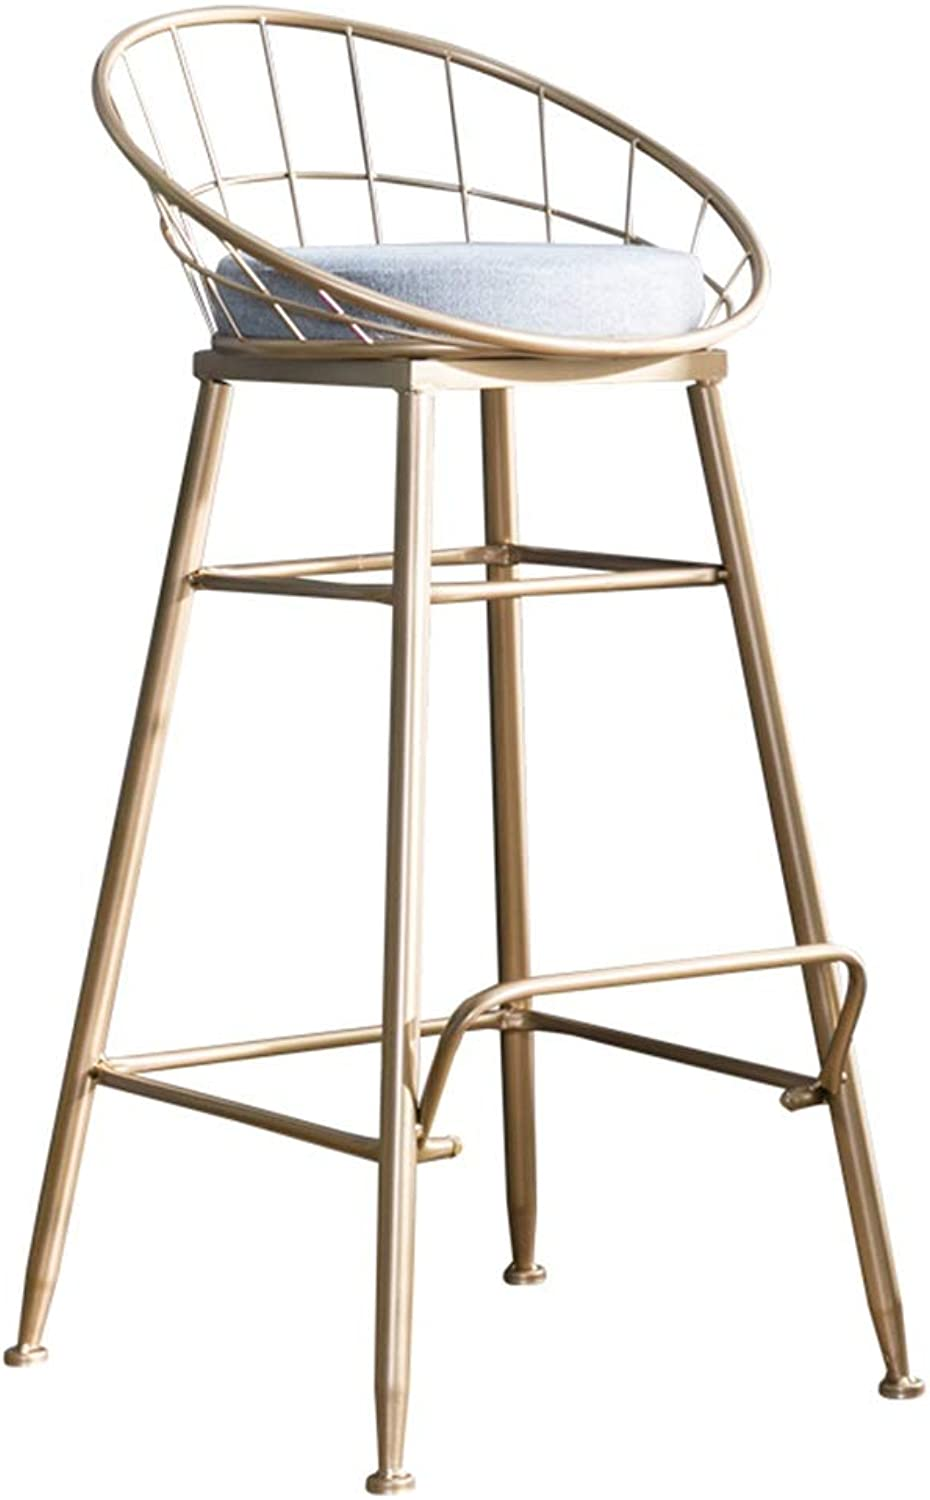 Barstools Chair High Stool Bar Stool Breakfast Chair and Cushion Seat Back Comfort Kitchen Breakfast Counter Greenhouse gold (Multiple Sizes) (Size   48x48x85cm)